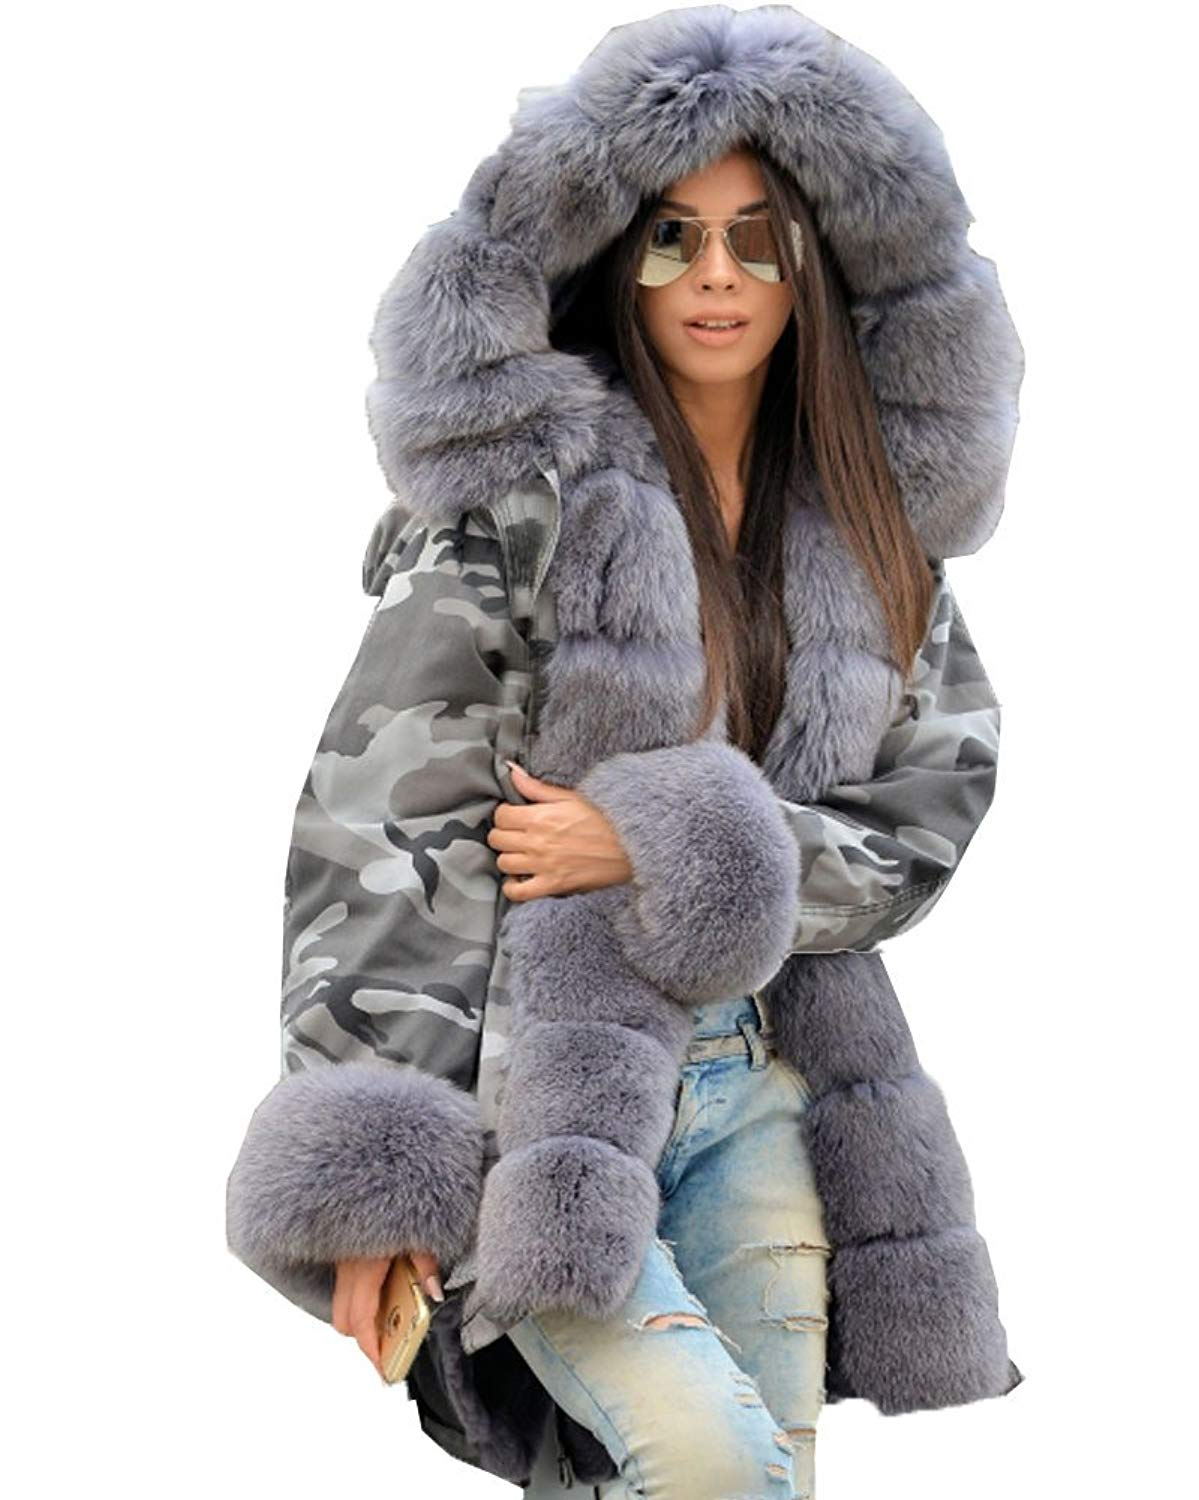 c42650aa2536eb Get Quotations · Aox Women's Winter Faux Fur Hood Warm Thicken Military  Camo Loose Parka Coat Jacket Plus Size